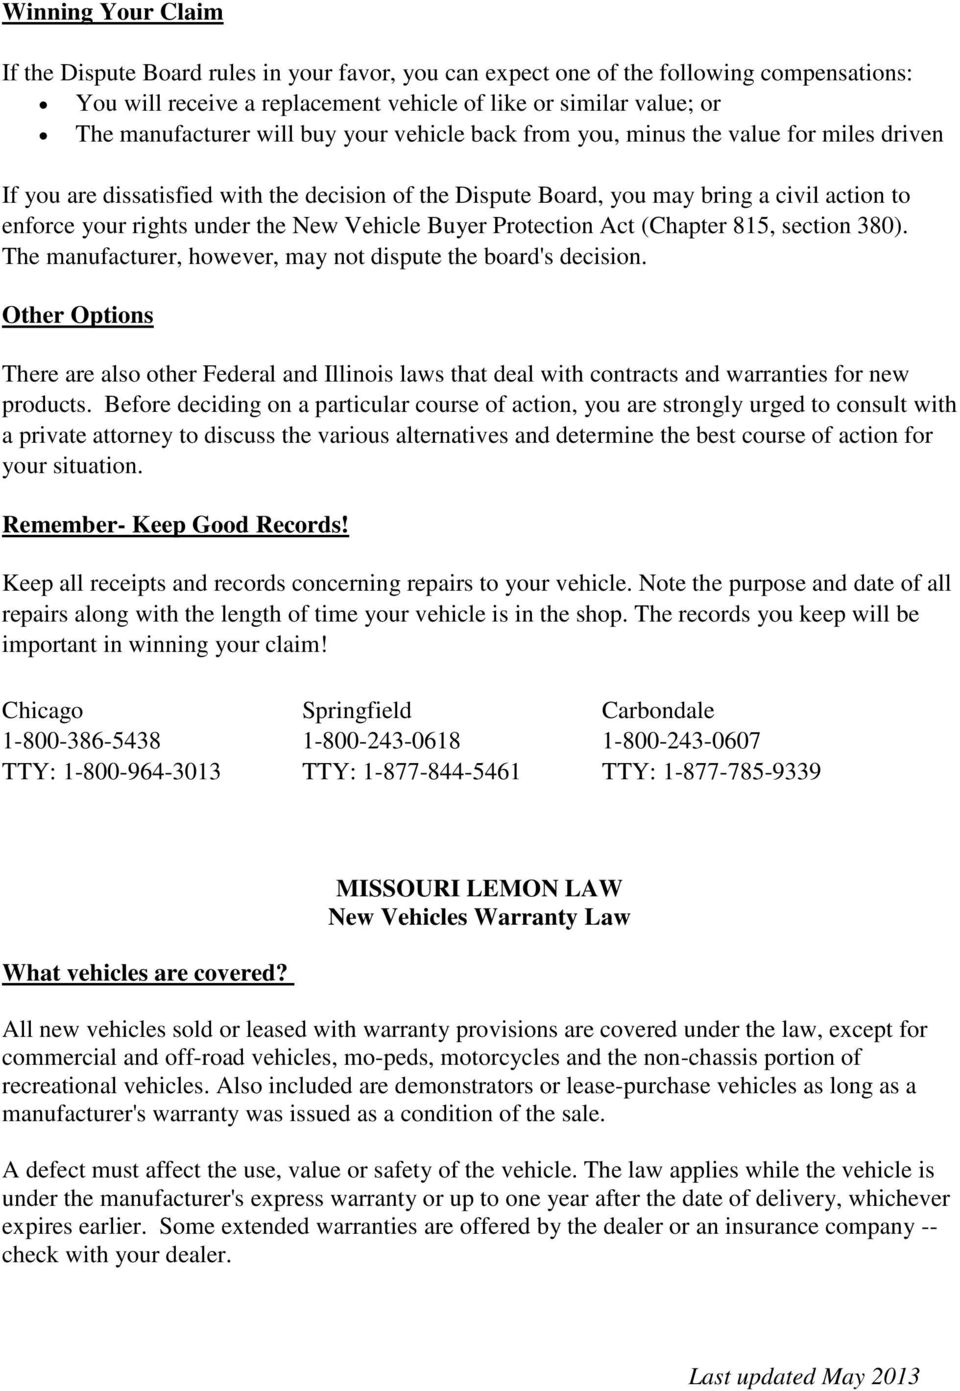 Vehicle Buyer Protection Act (Chapter 815, section 380). The manufacturer, however, may not dispute the board's decision.